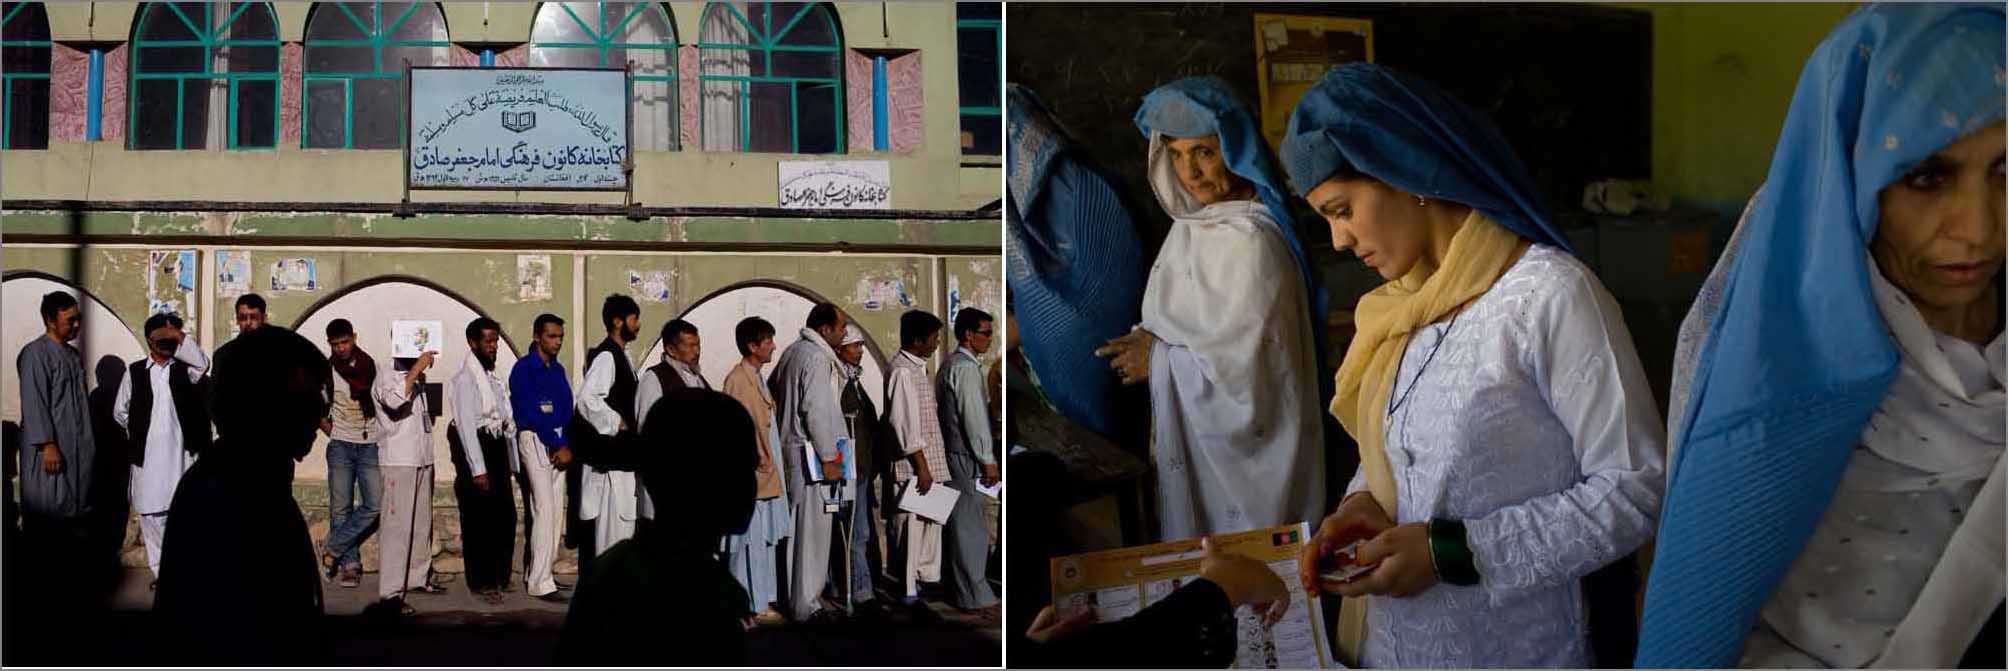 (l) Men stand in line to cast their ballots while taking part in Afghanistan's presidential election in Kabul on August 20, 2009.(r) A group of women vote in a classroom in Kabul, Afghanistan, August 20, 2009.